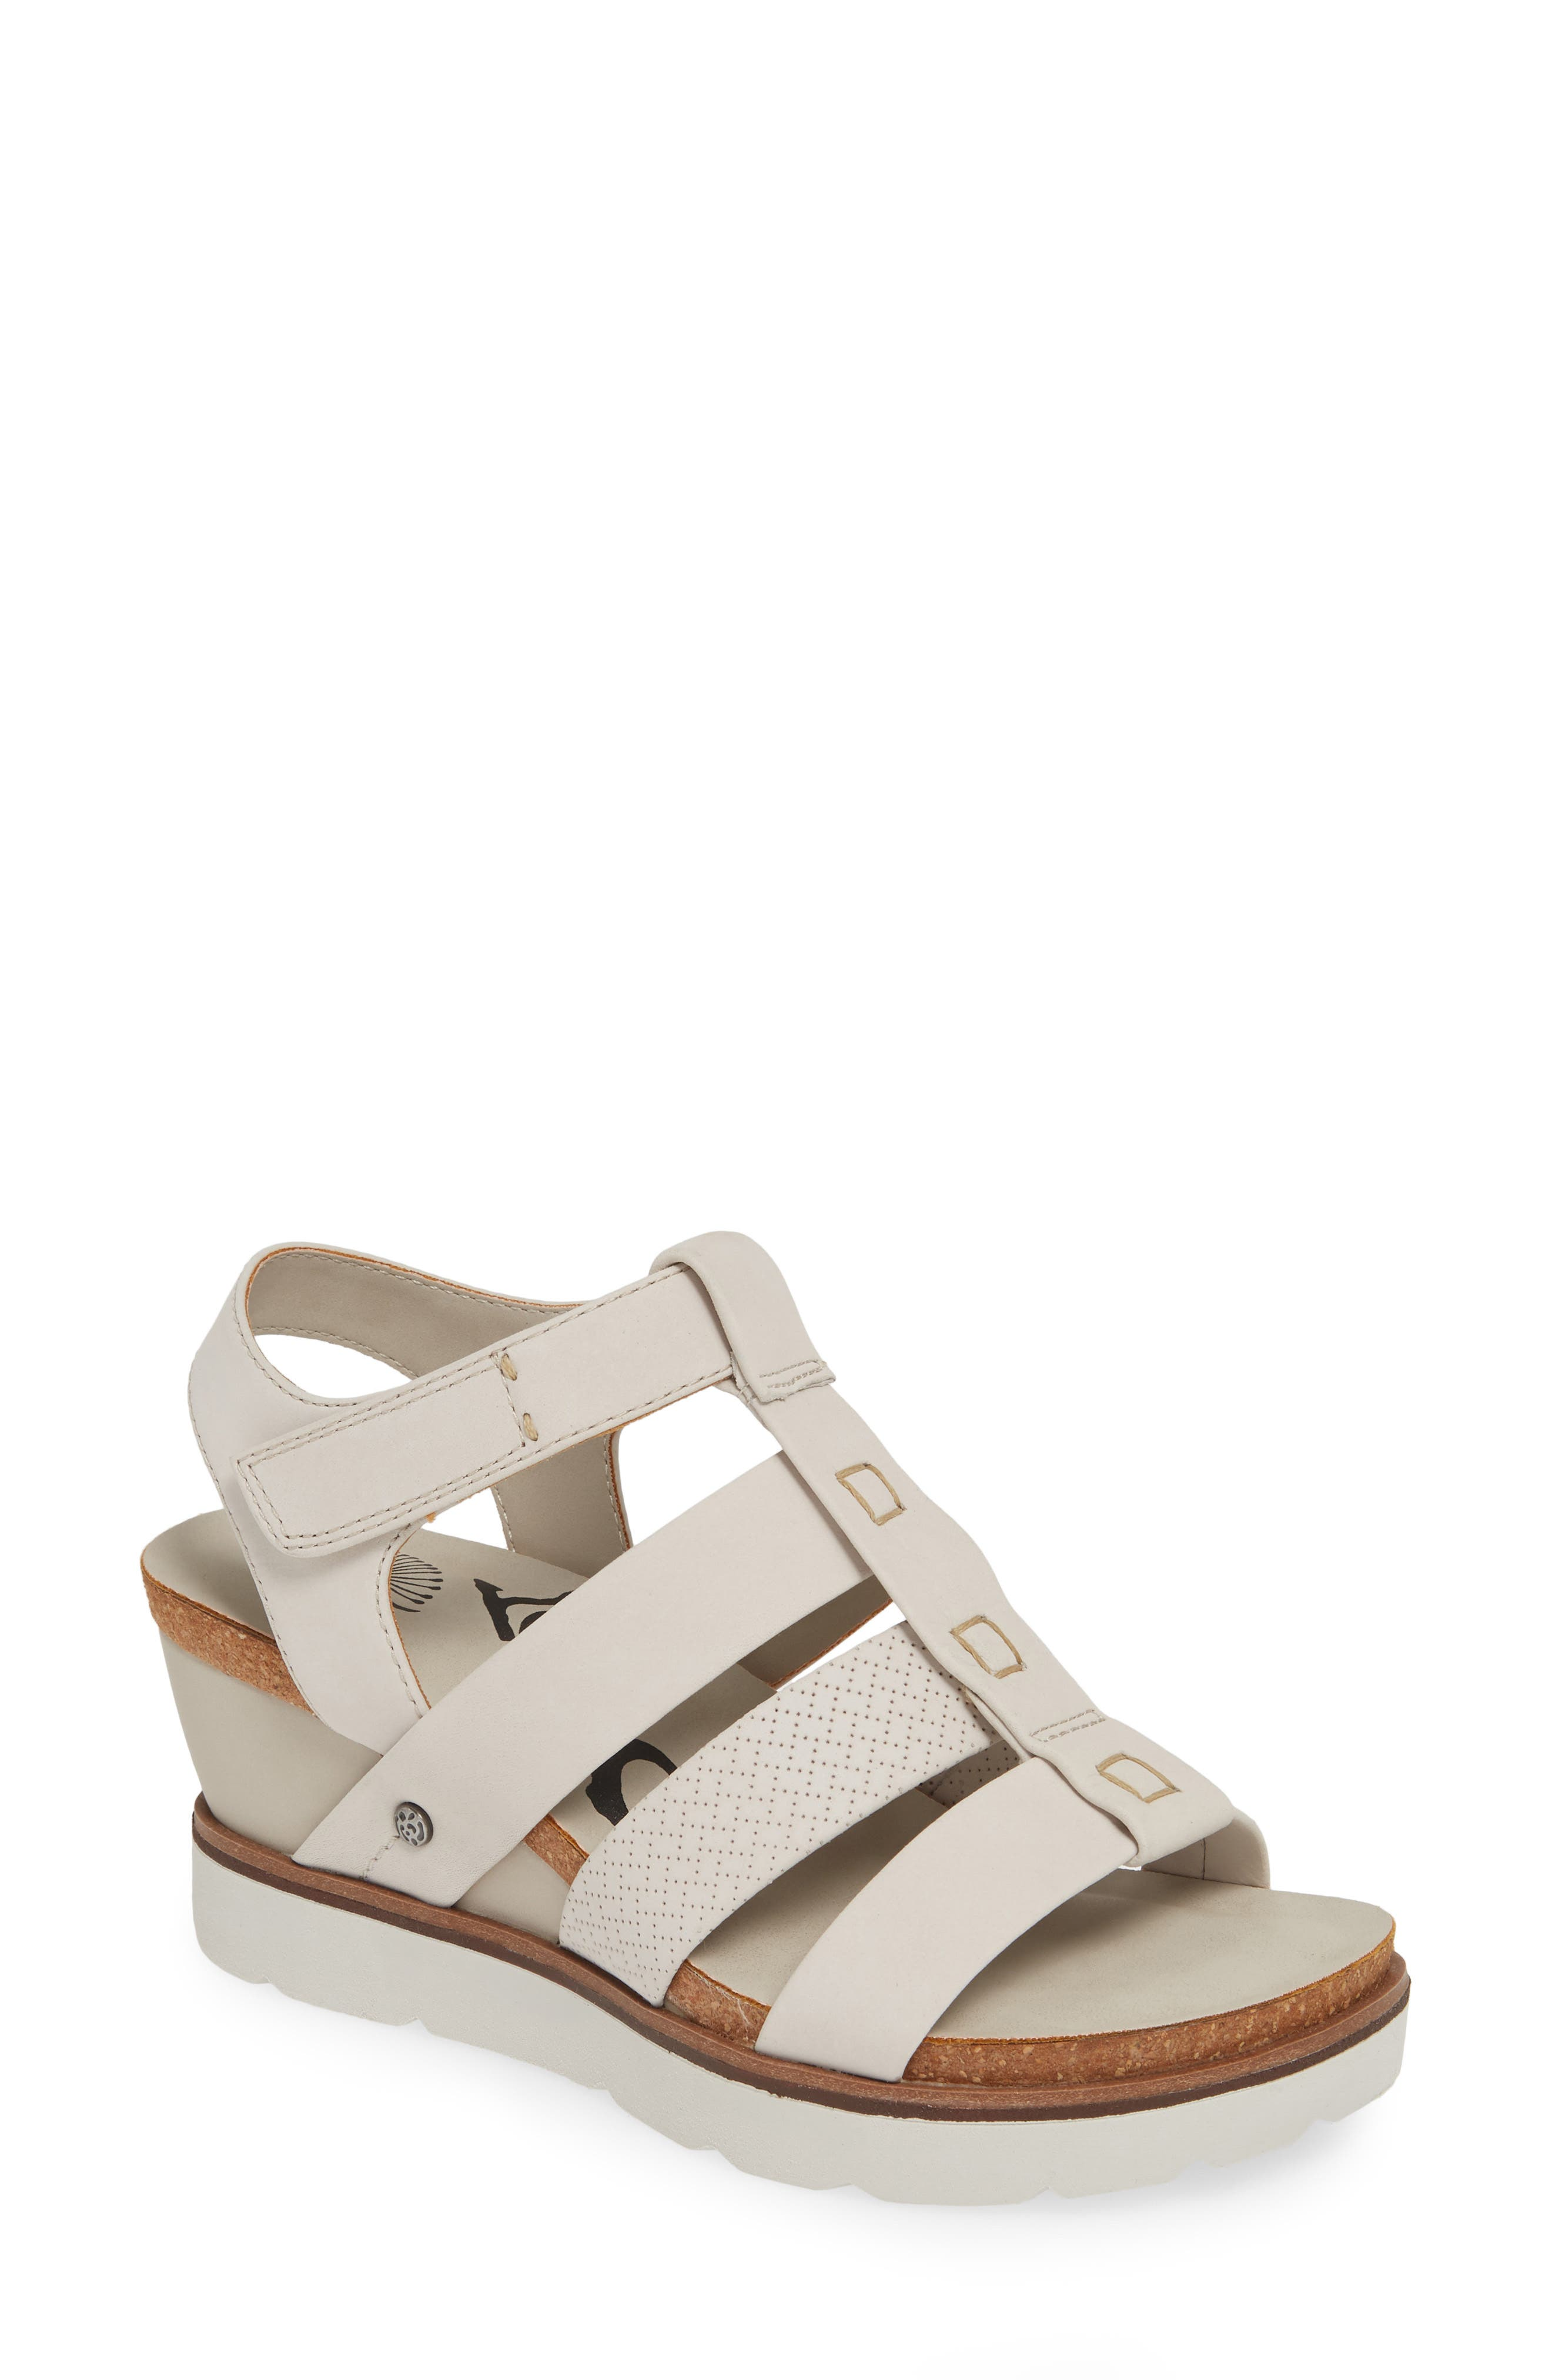 New Moon Wedge Sandal,                             Main thumbnail 1, color,                             DOVE GREY LEATHER